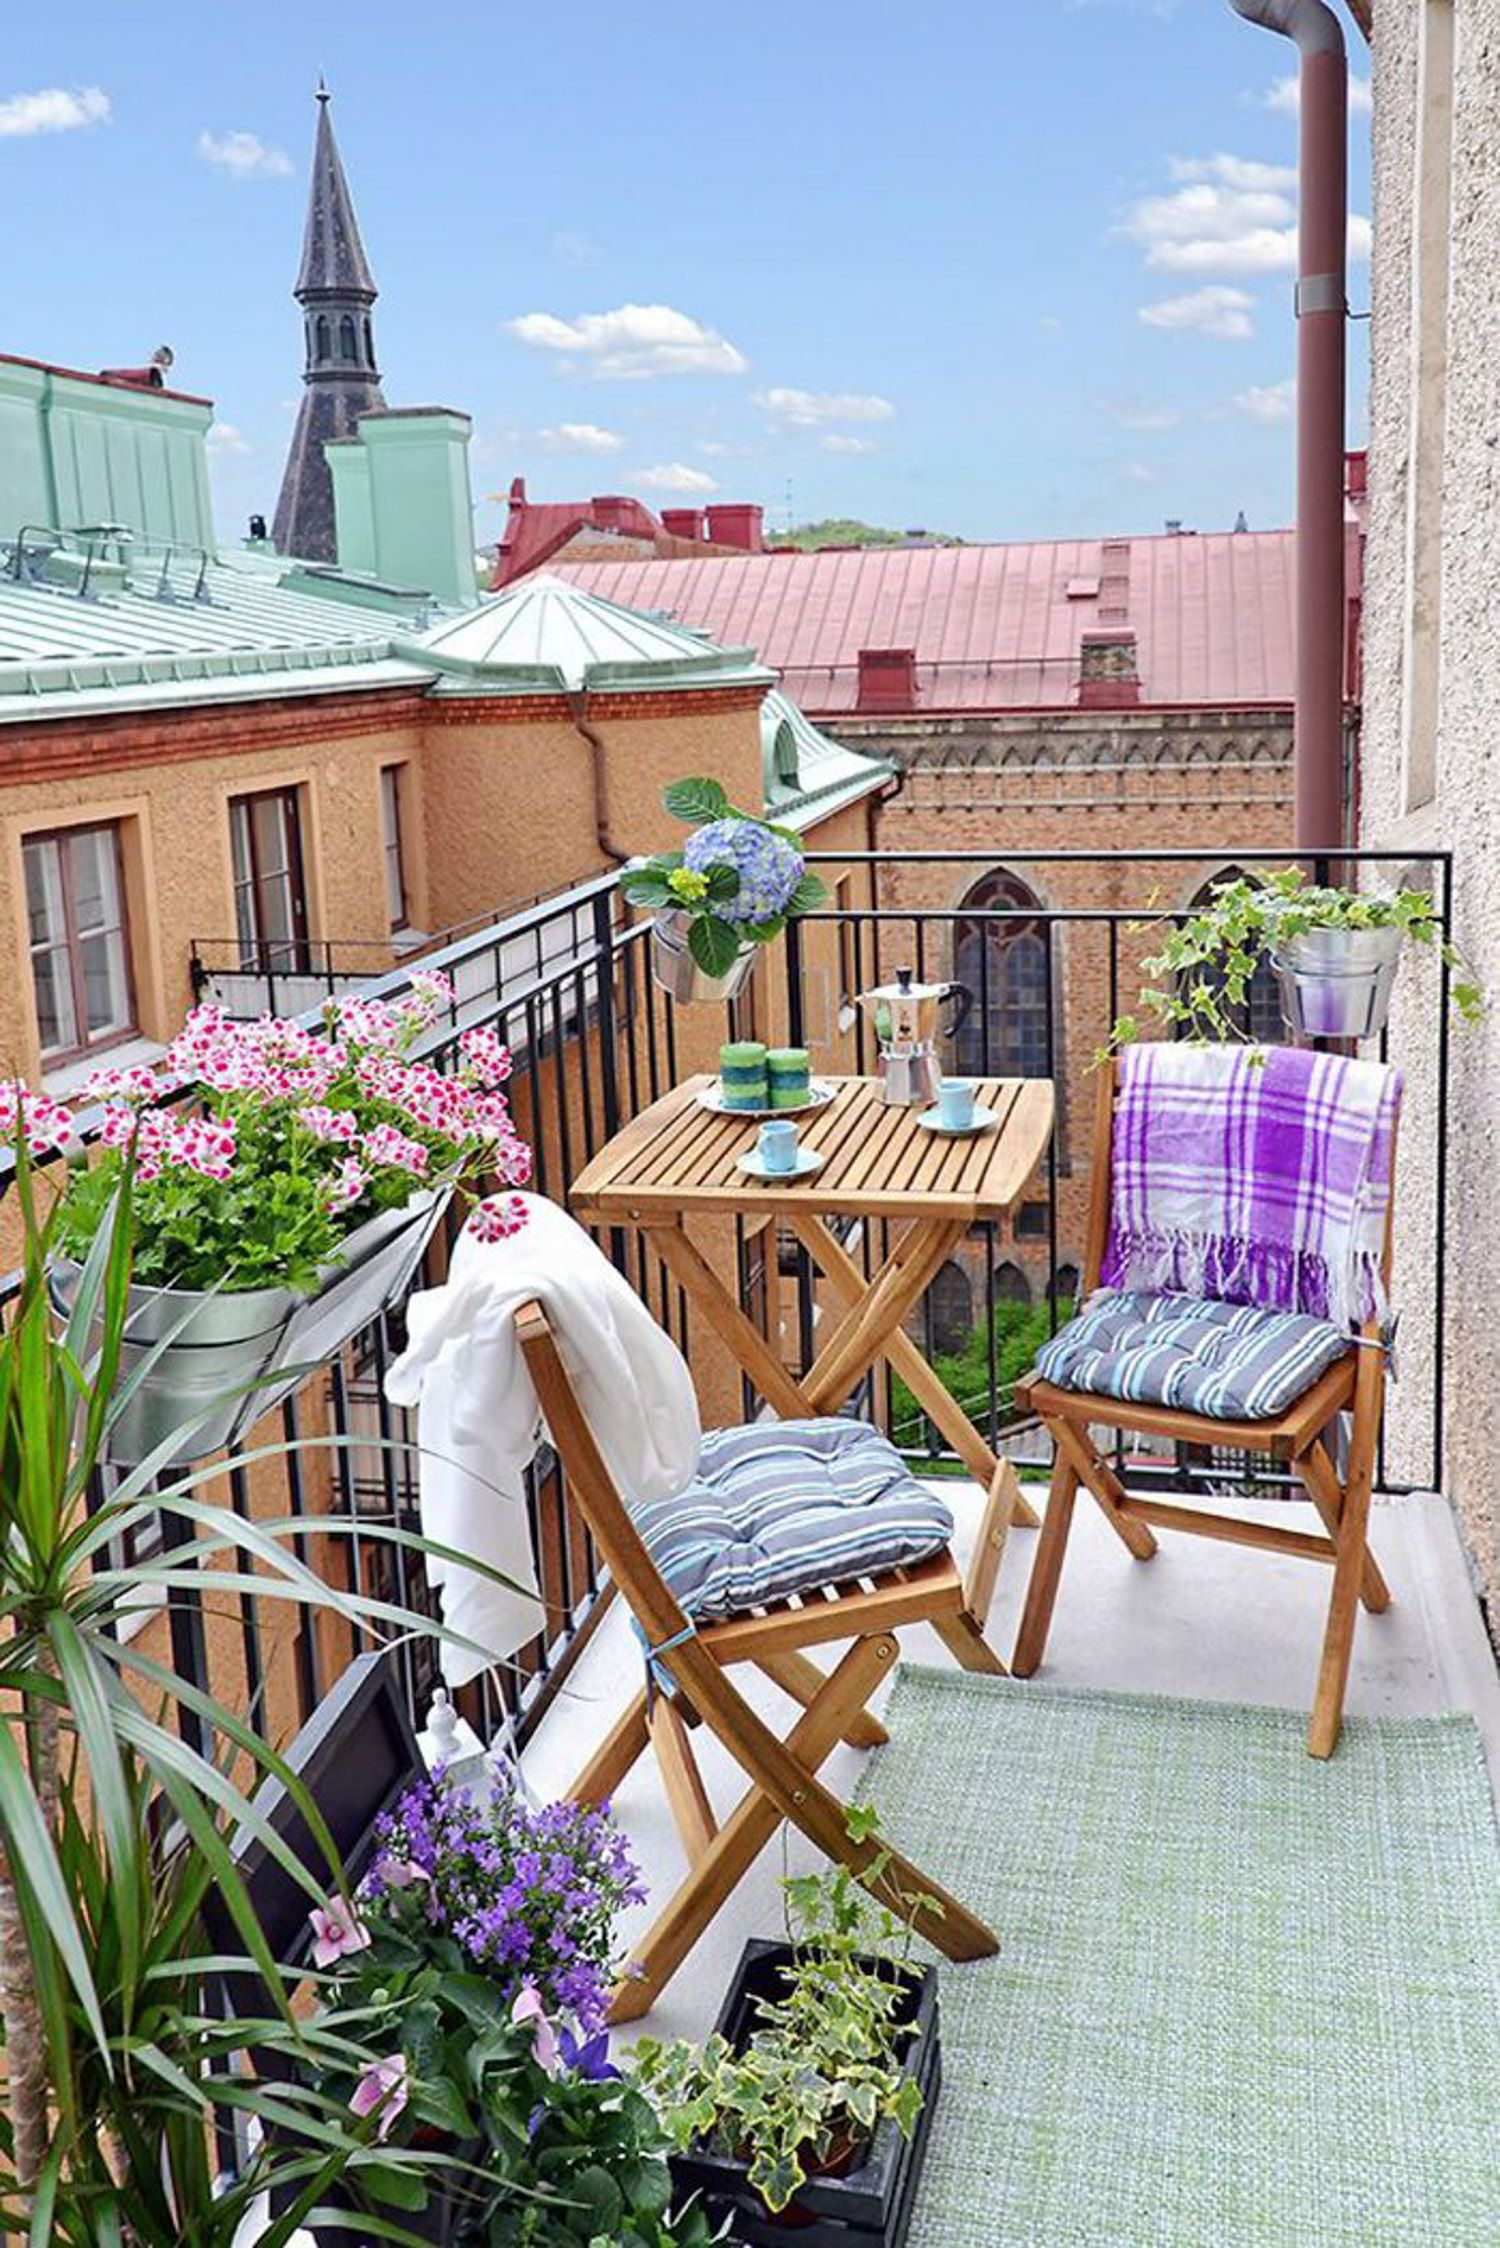 Balkon Inspiration Inspiration For Small Apartment Balconies In The City Balkon